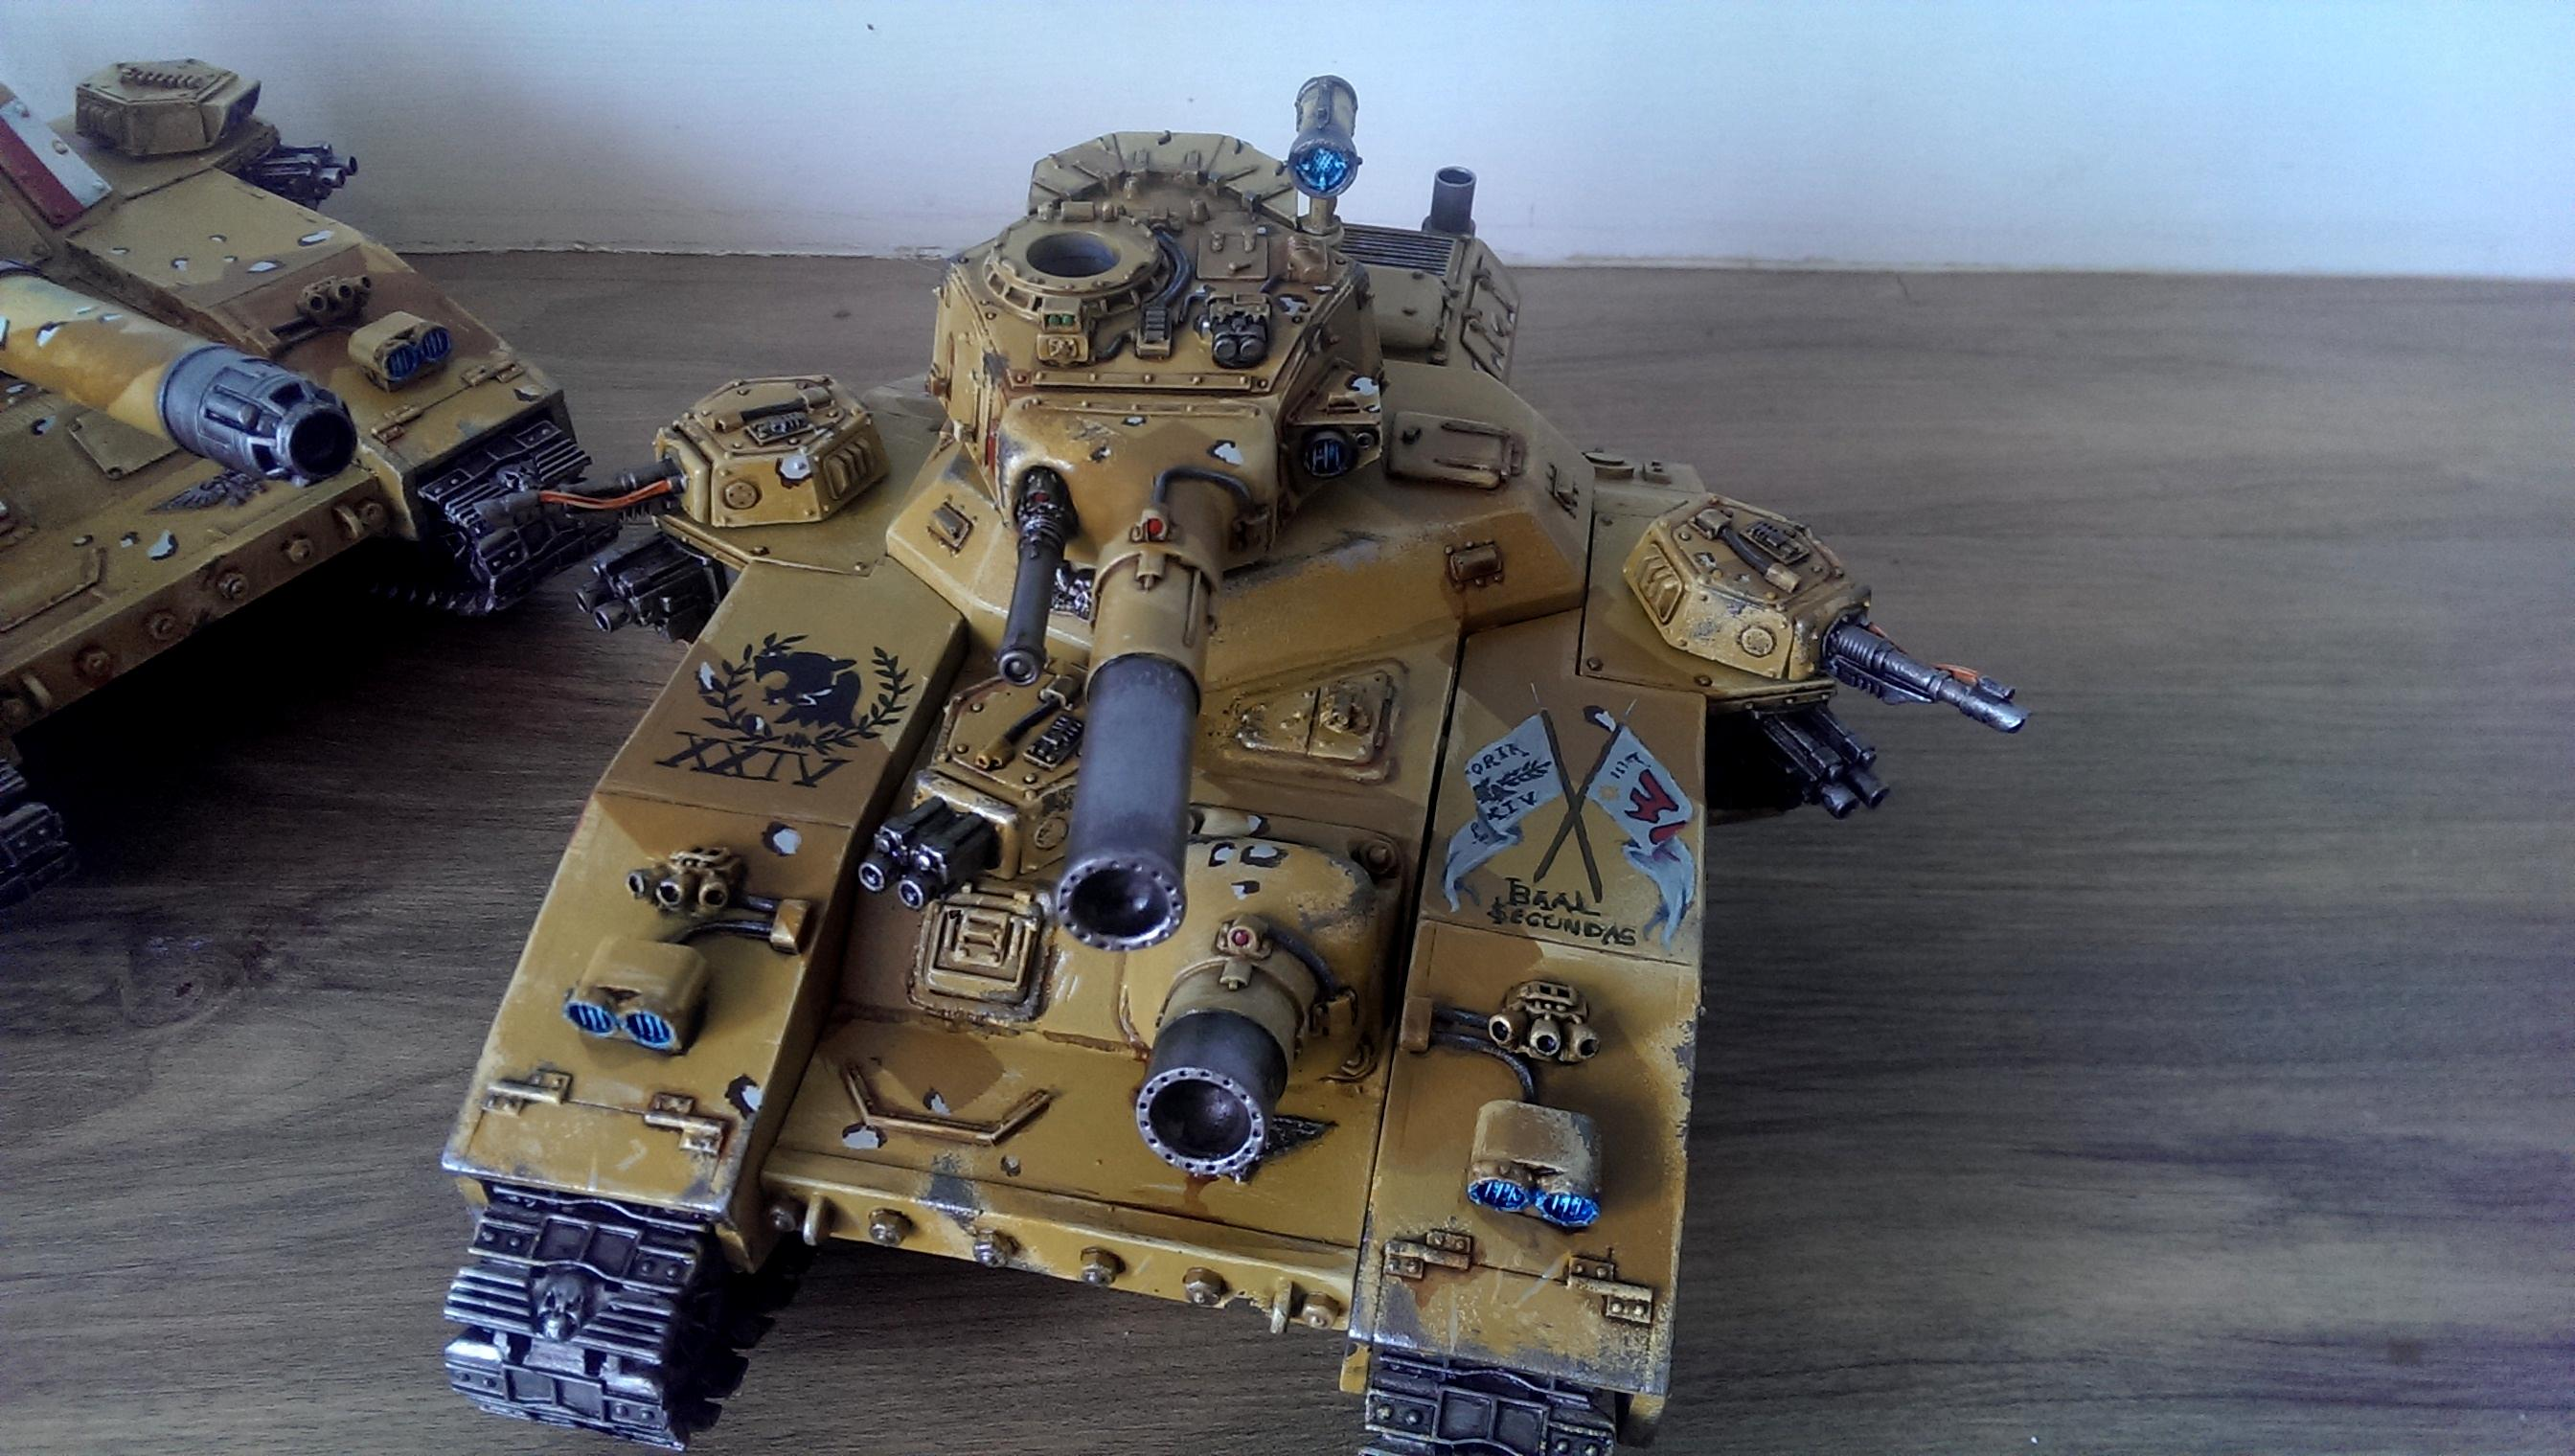 Astra Militarum, Baneblade, Forge World, Imperial Guard, Lord Of War, Super-heavy, Tank